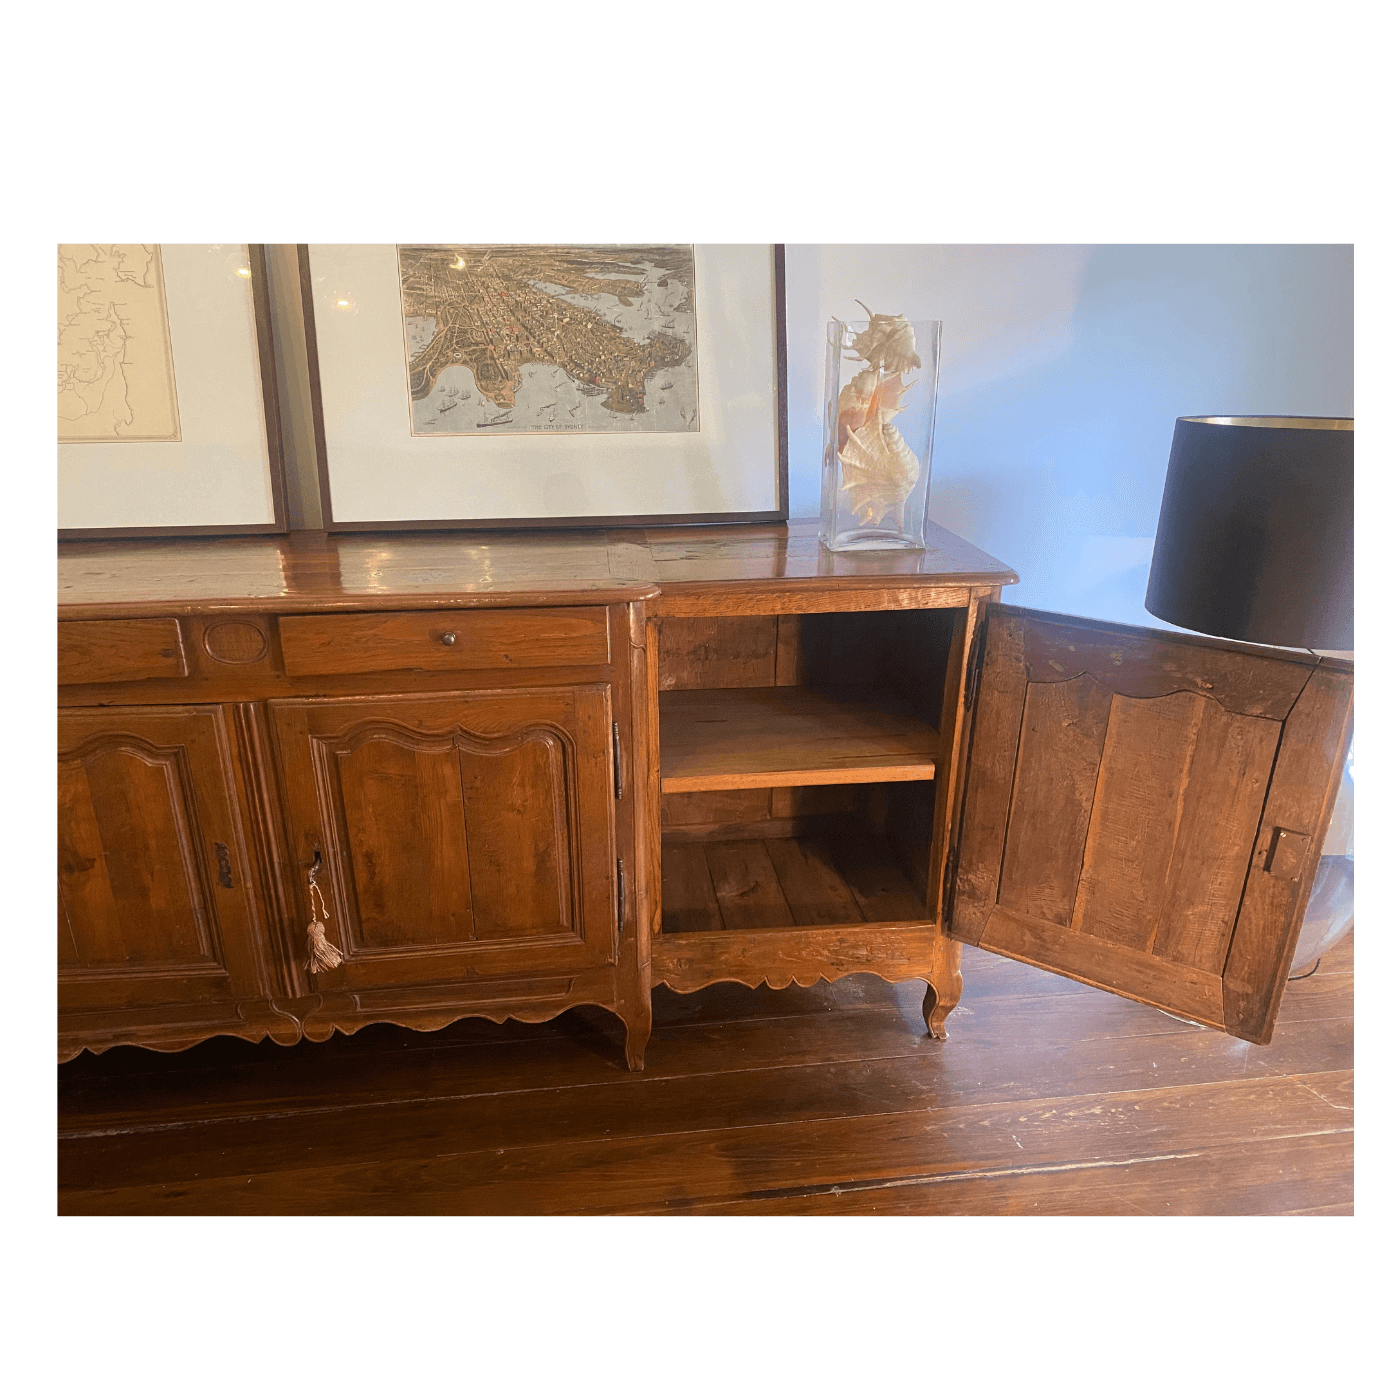 Early 18th Century French Provincial Buffet6